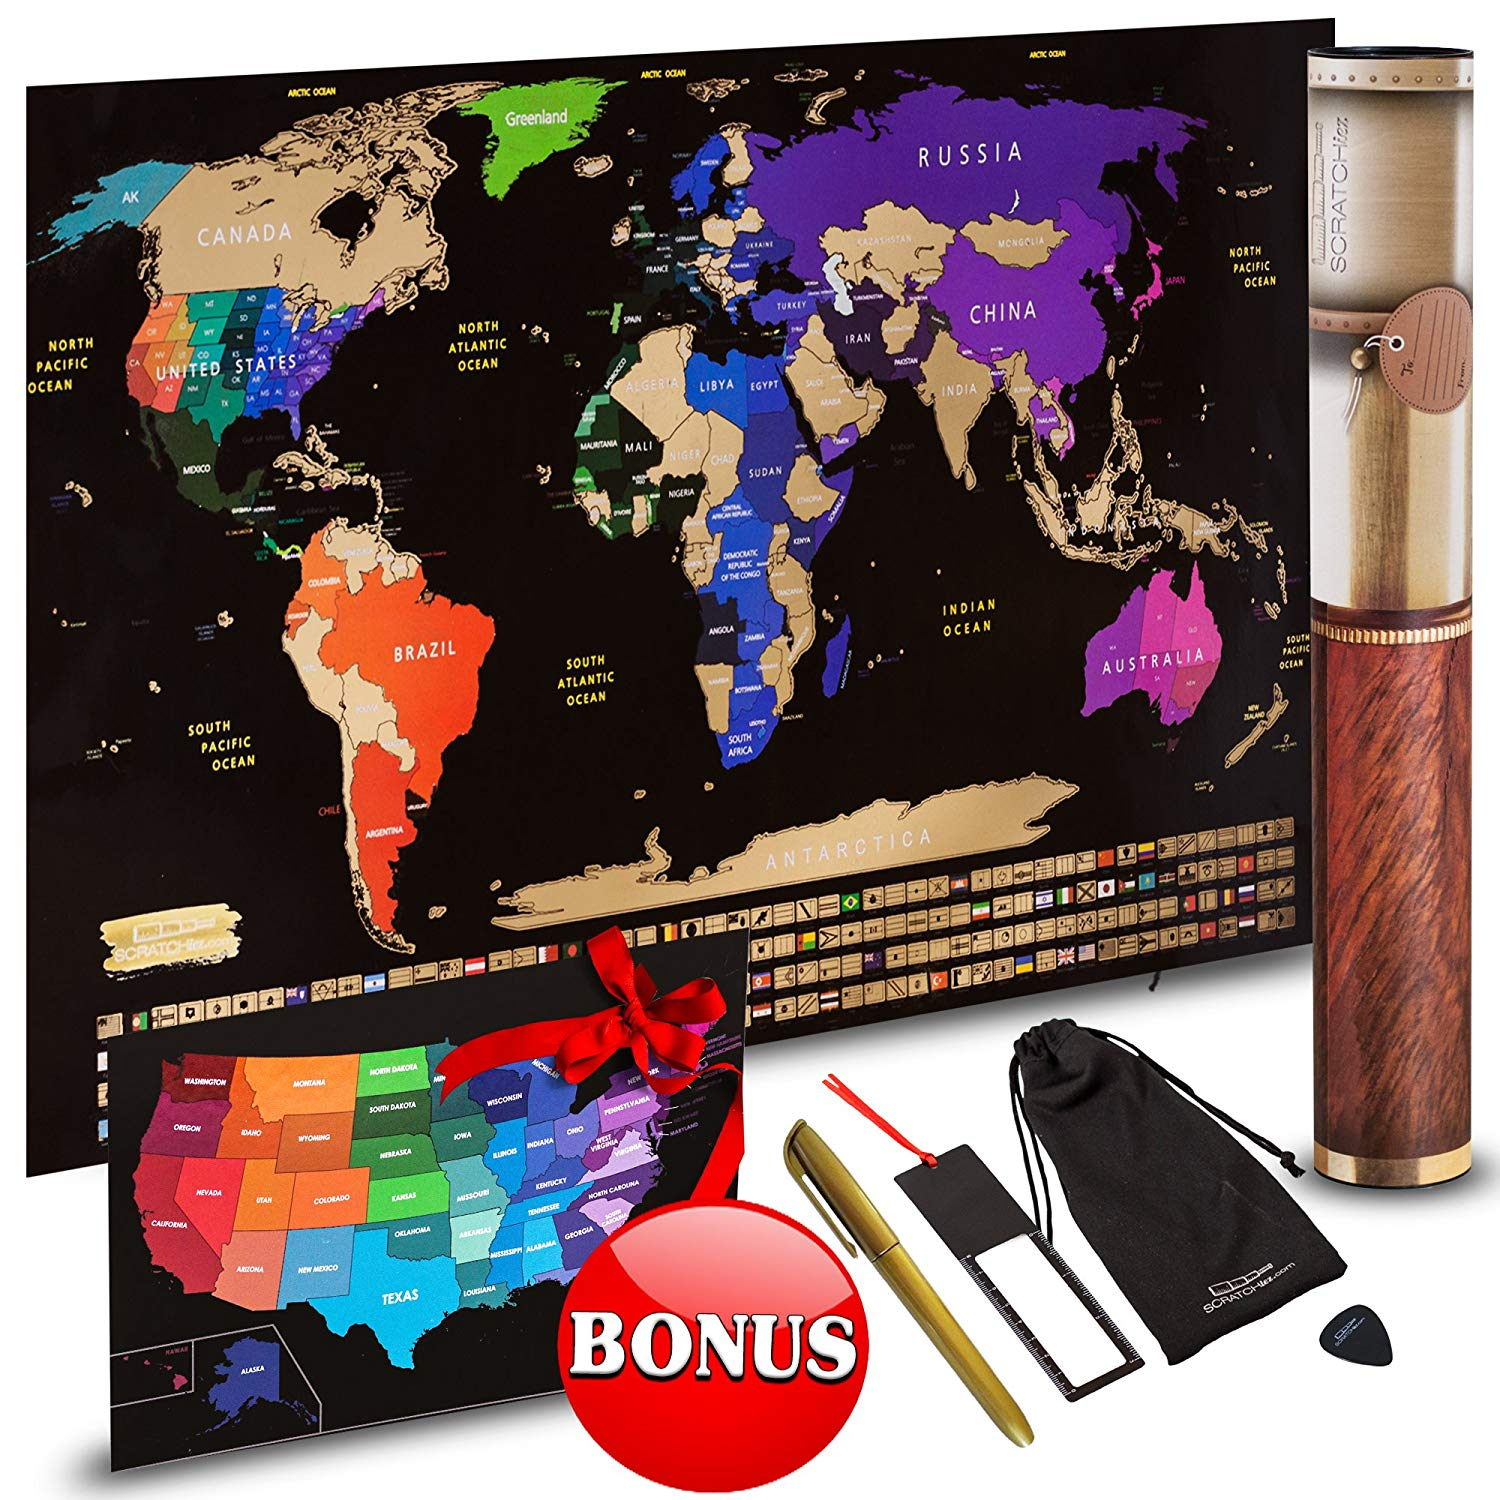 Scratch Off World Map Travel Gift Set – Scratch Art World Map Poster and Country Flags + FREE Scratchable US Map, Scratcher, Microfiber Cloth, Erasable Gold Pen – Wanderlust Wall Decor by SCRATCHiez